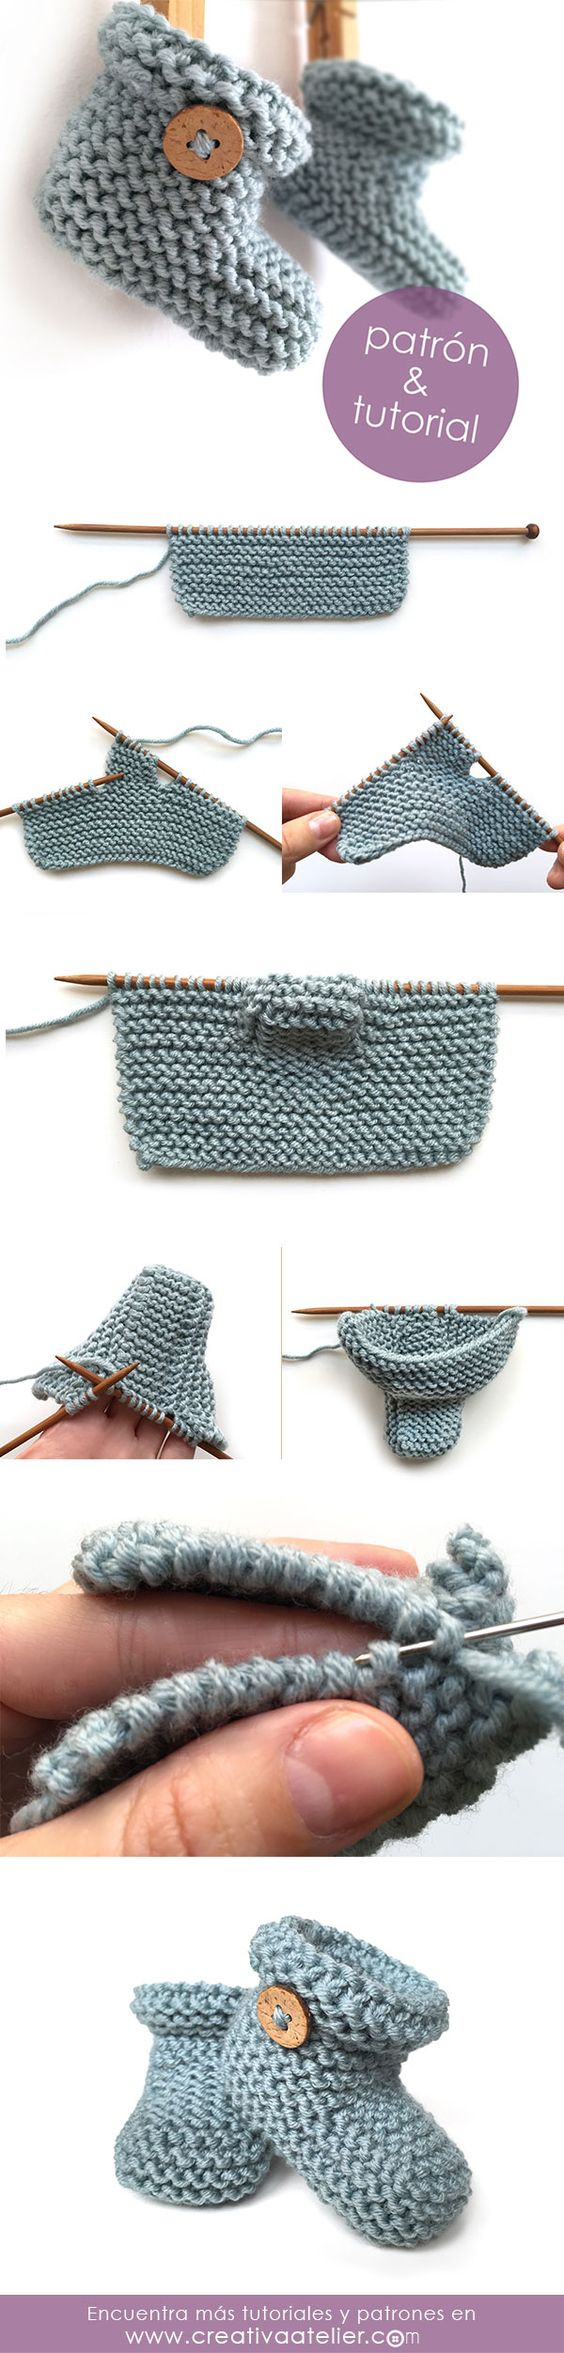 Epipa Knitting Pattern Baby Booties : 40 + Knit Baby Booties with Pattern - Page 3 of 5